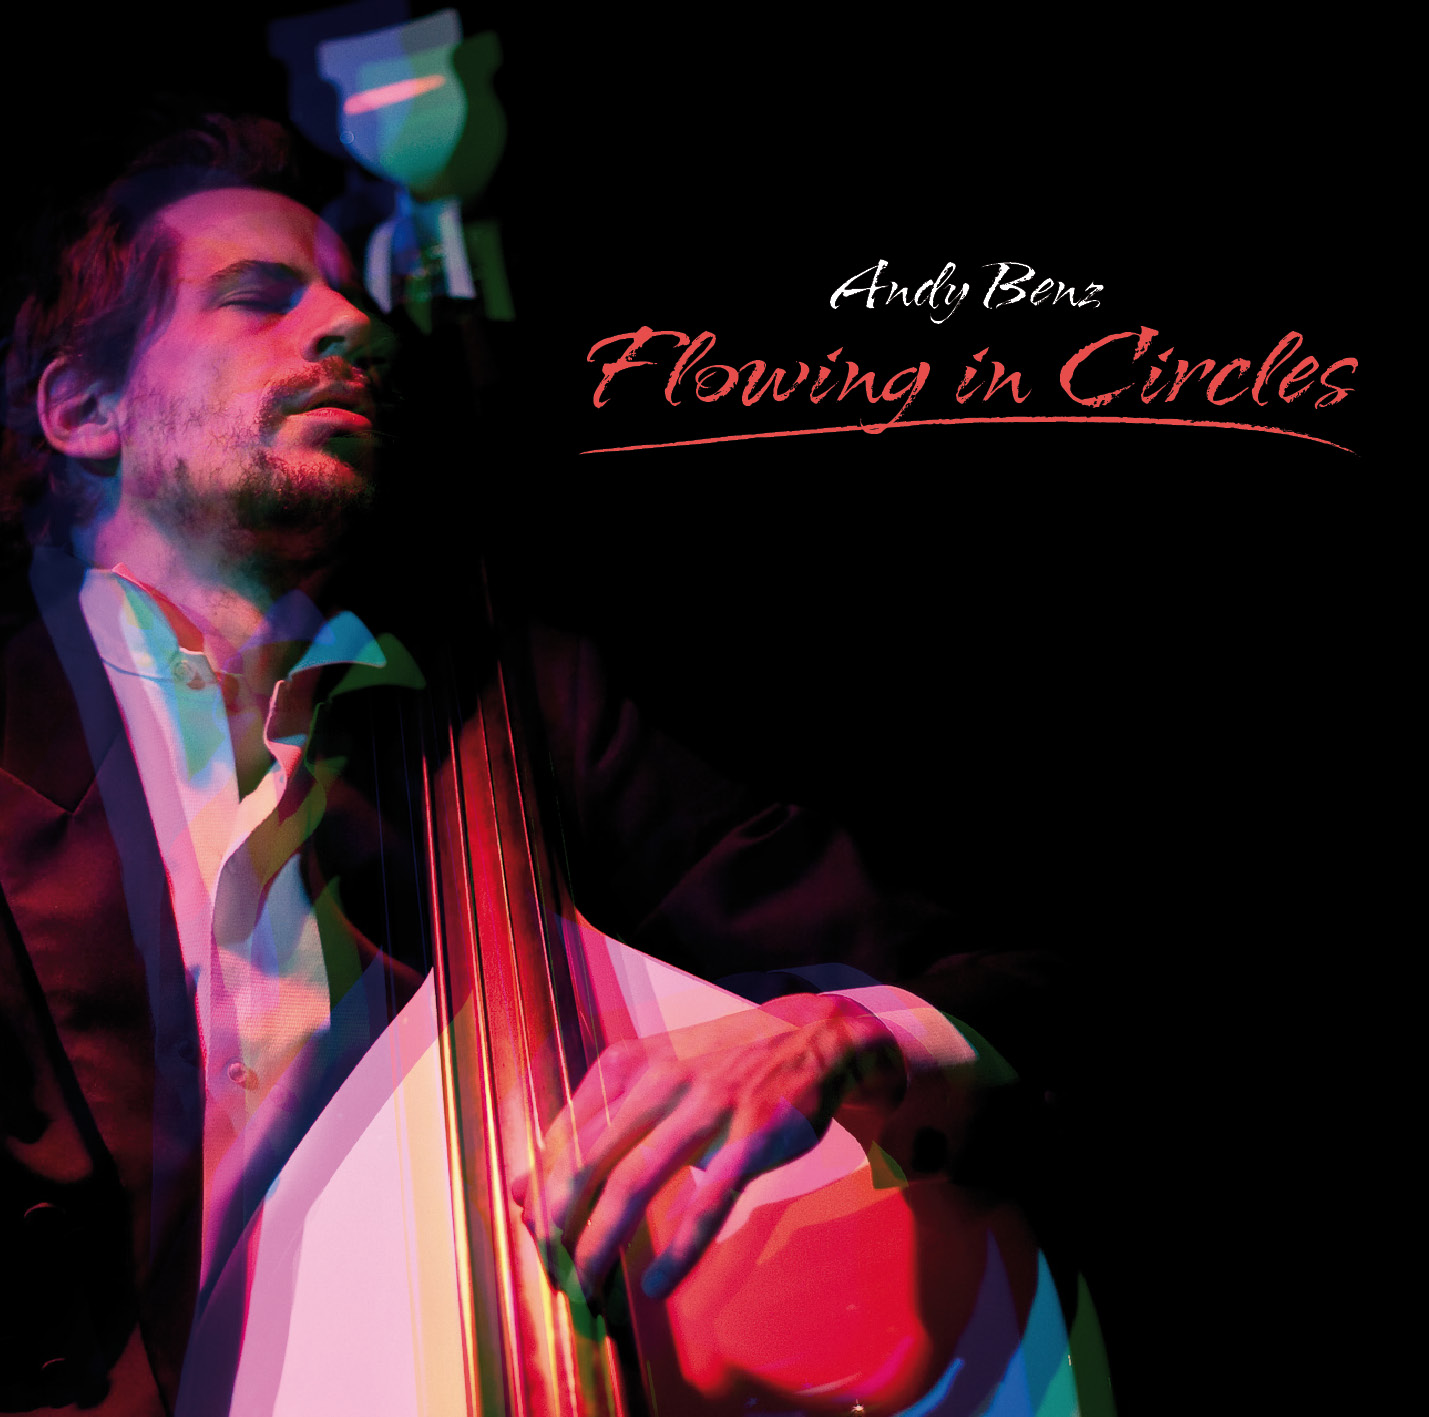 Cover photo from the album Andy Benz, Flowing in Circles. Contains music written and performed by Andreas Bennetzen. Click for link